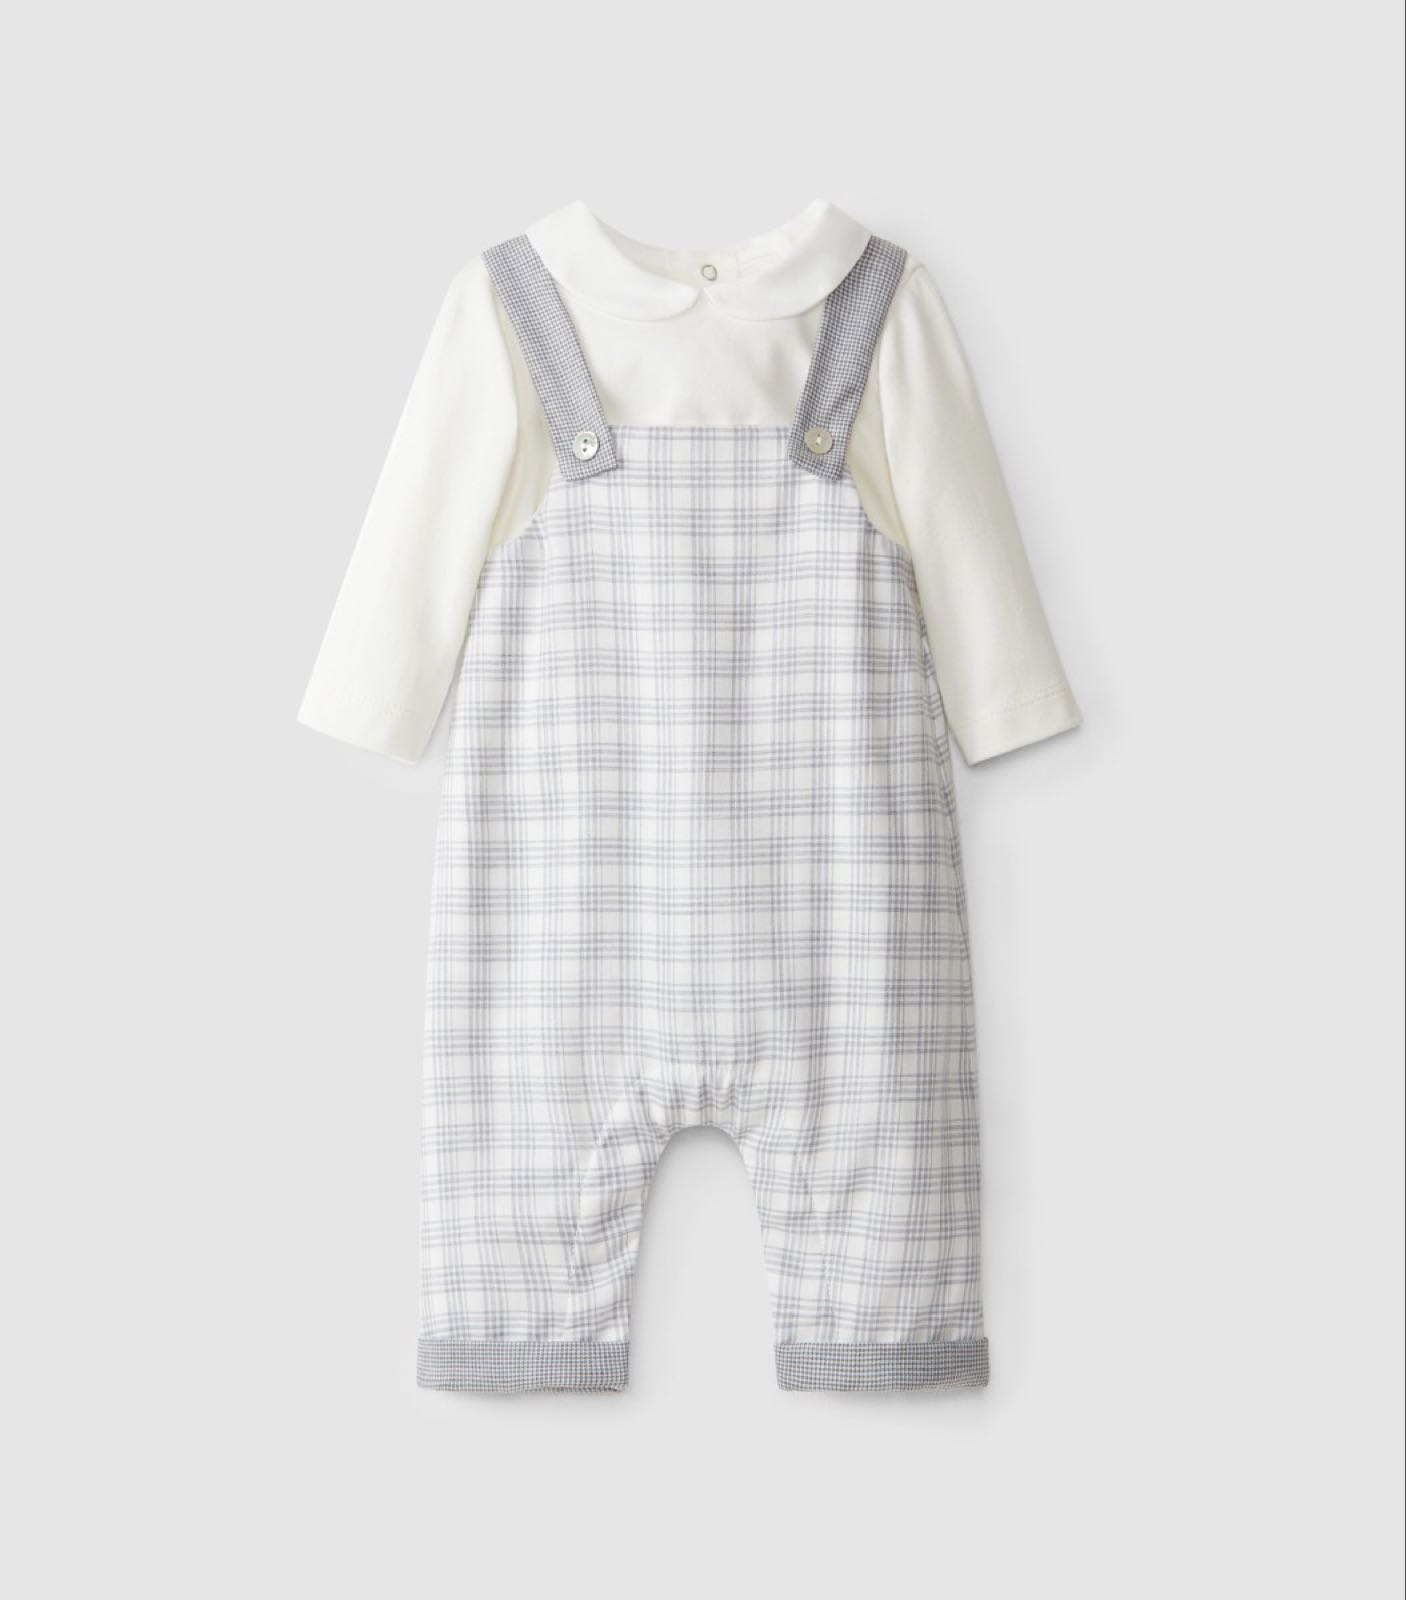 LARANJINHA BABY Two-in-One Dungarees Set 1459